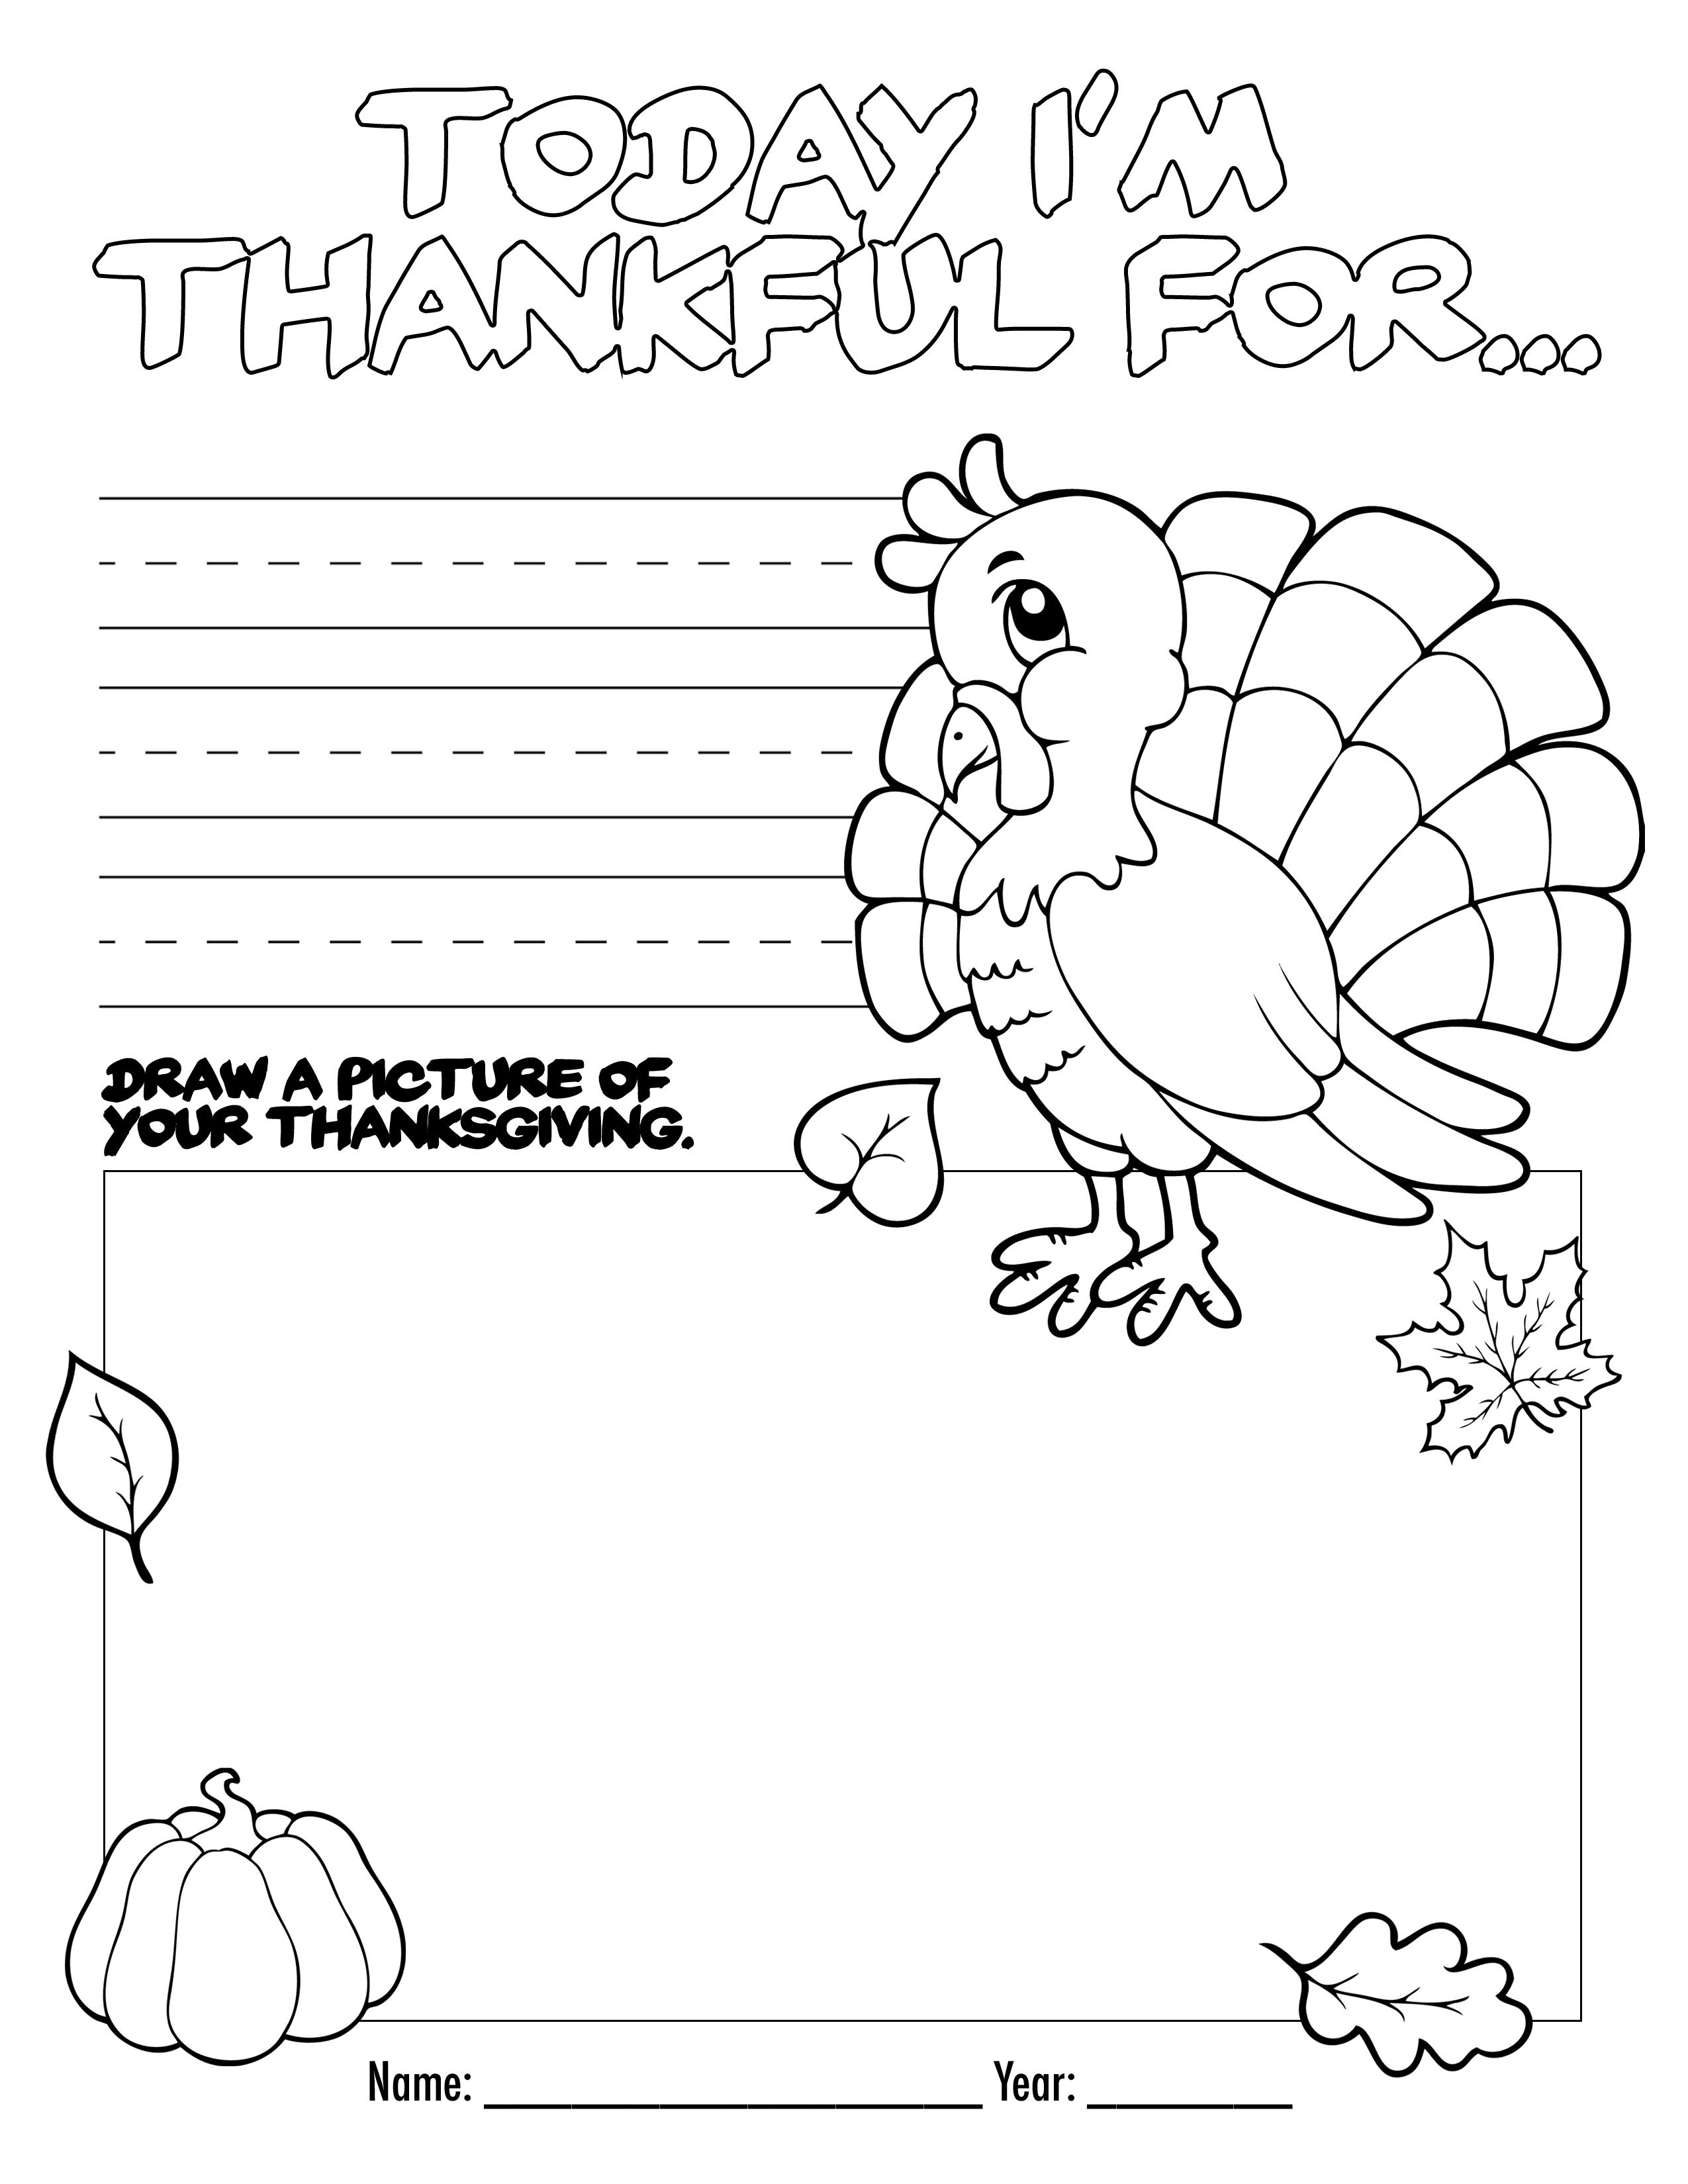 Thanksgiving Coloring Book Free Printable For The Kids! | Bloggers - Free Printable Thanksgiving Books